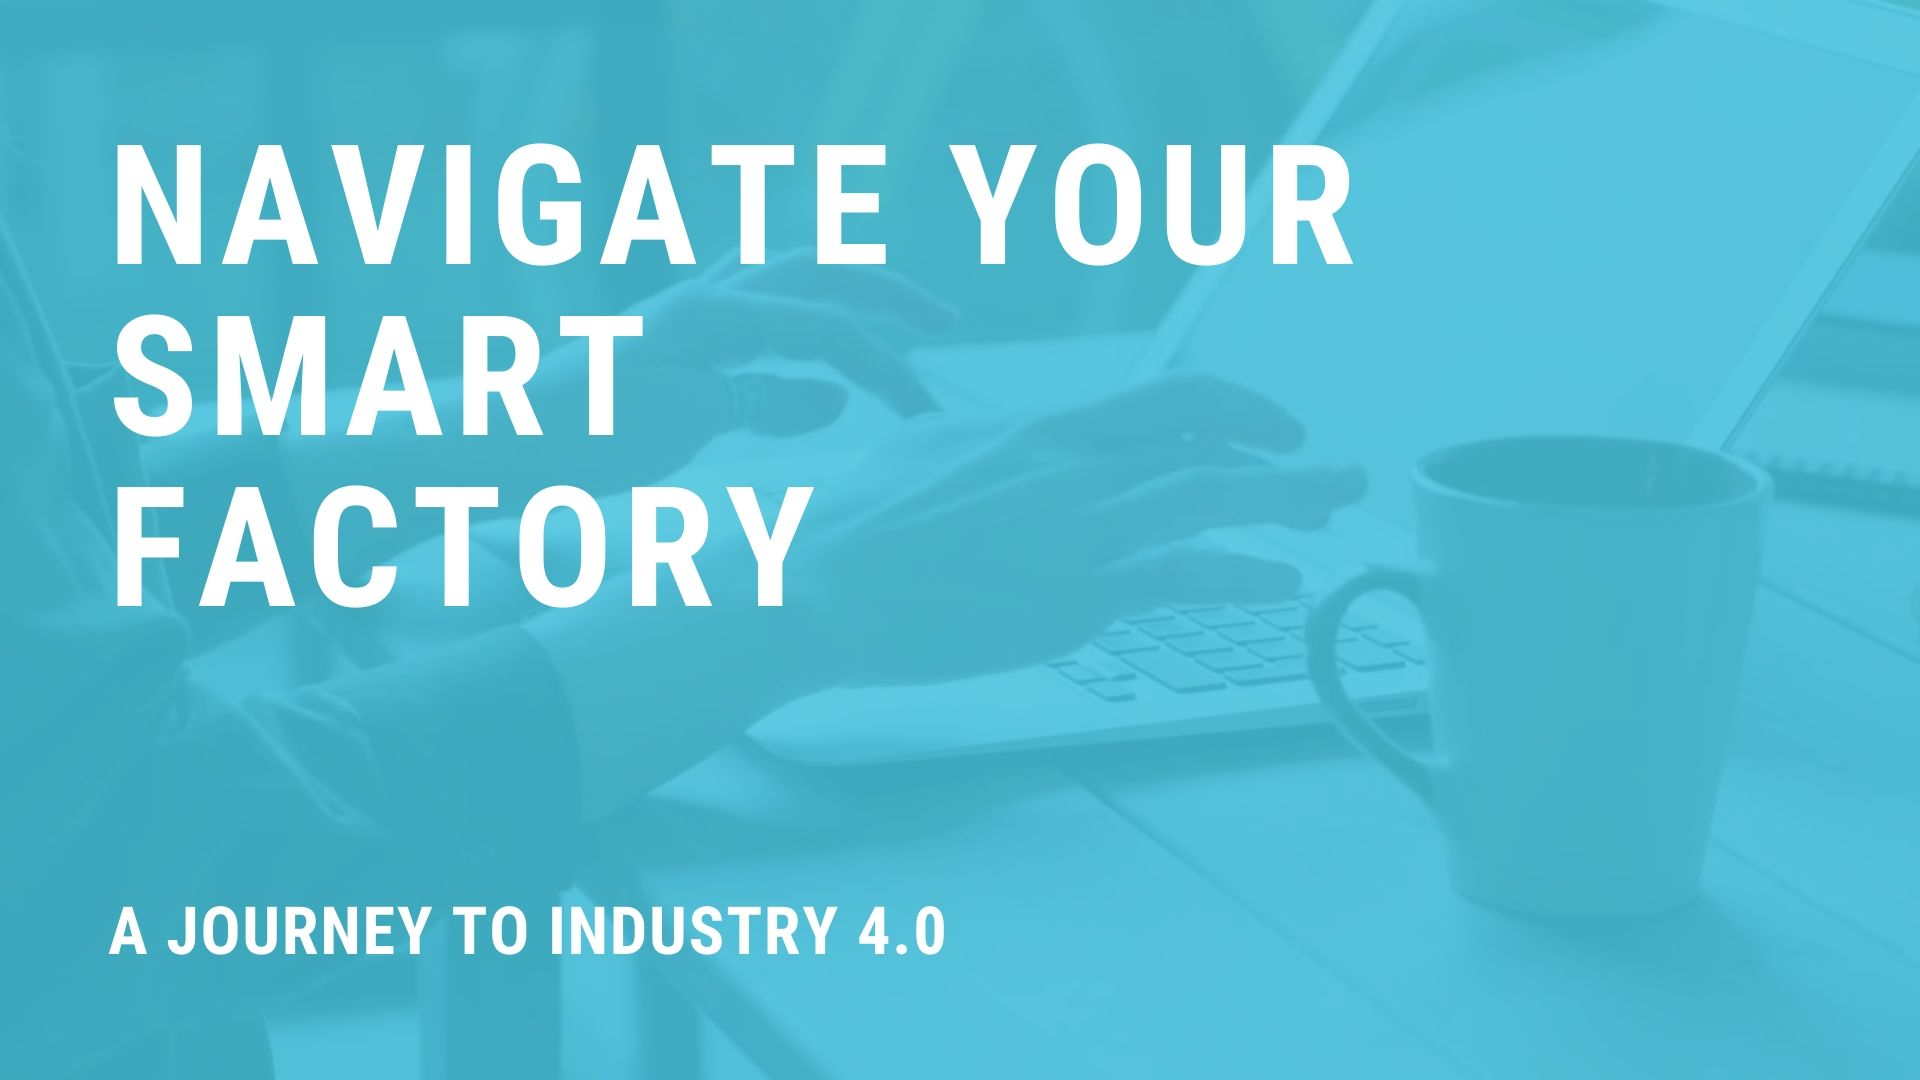 Navigate Your Smart Factory Industry 4.0